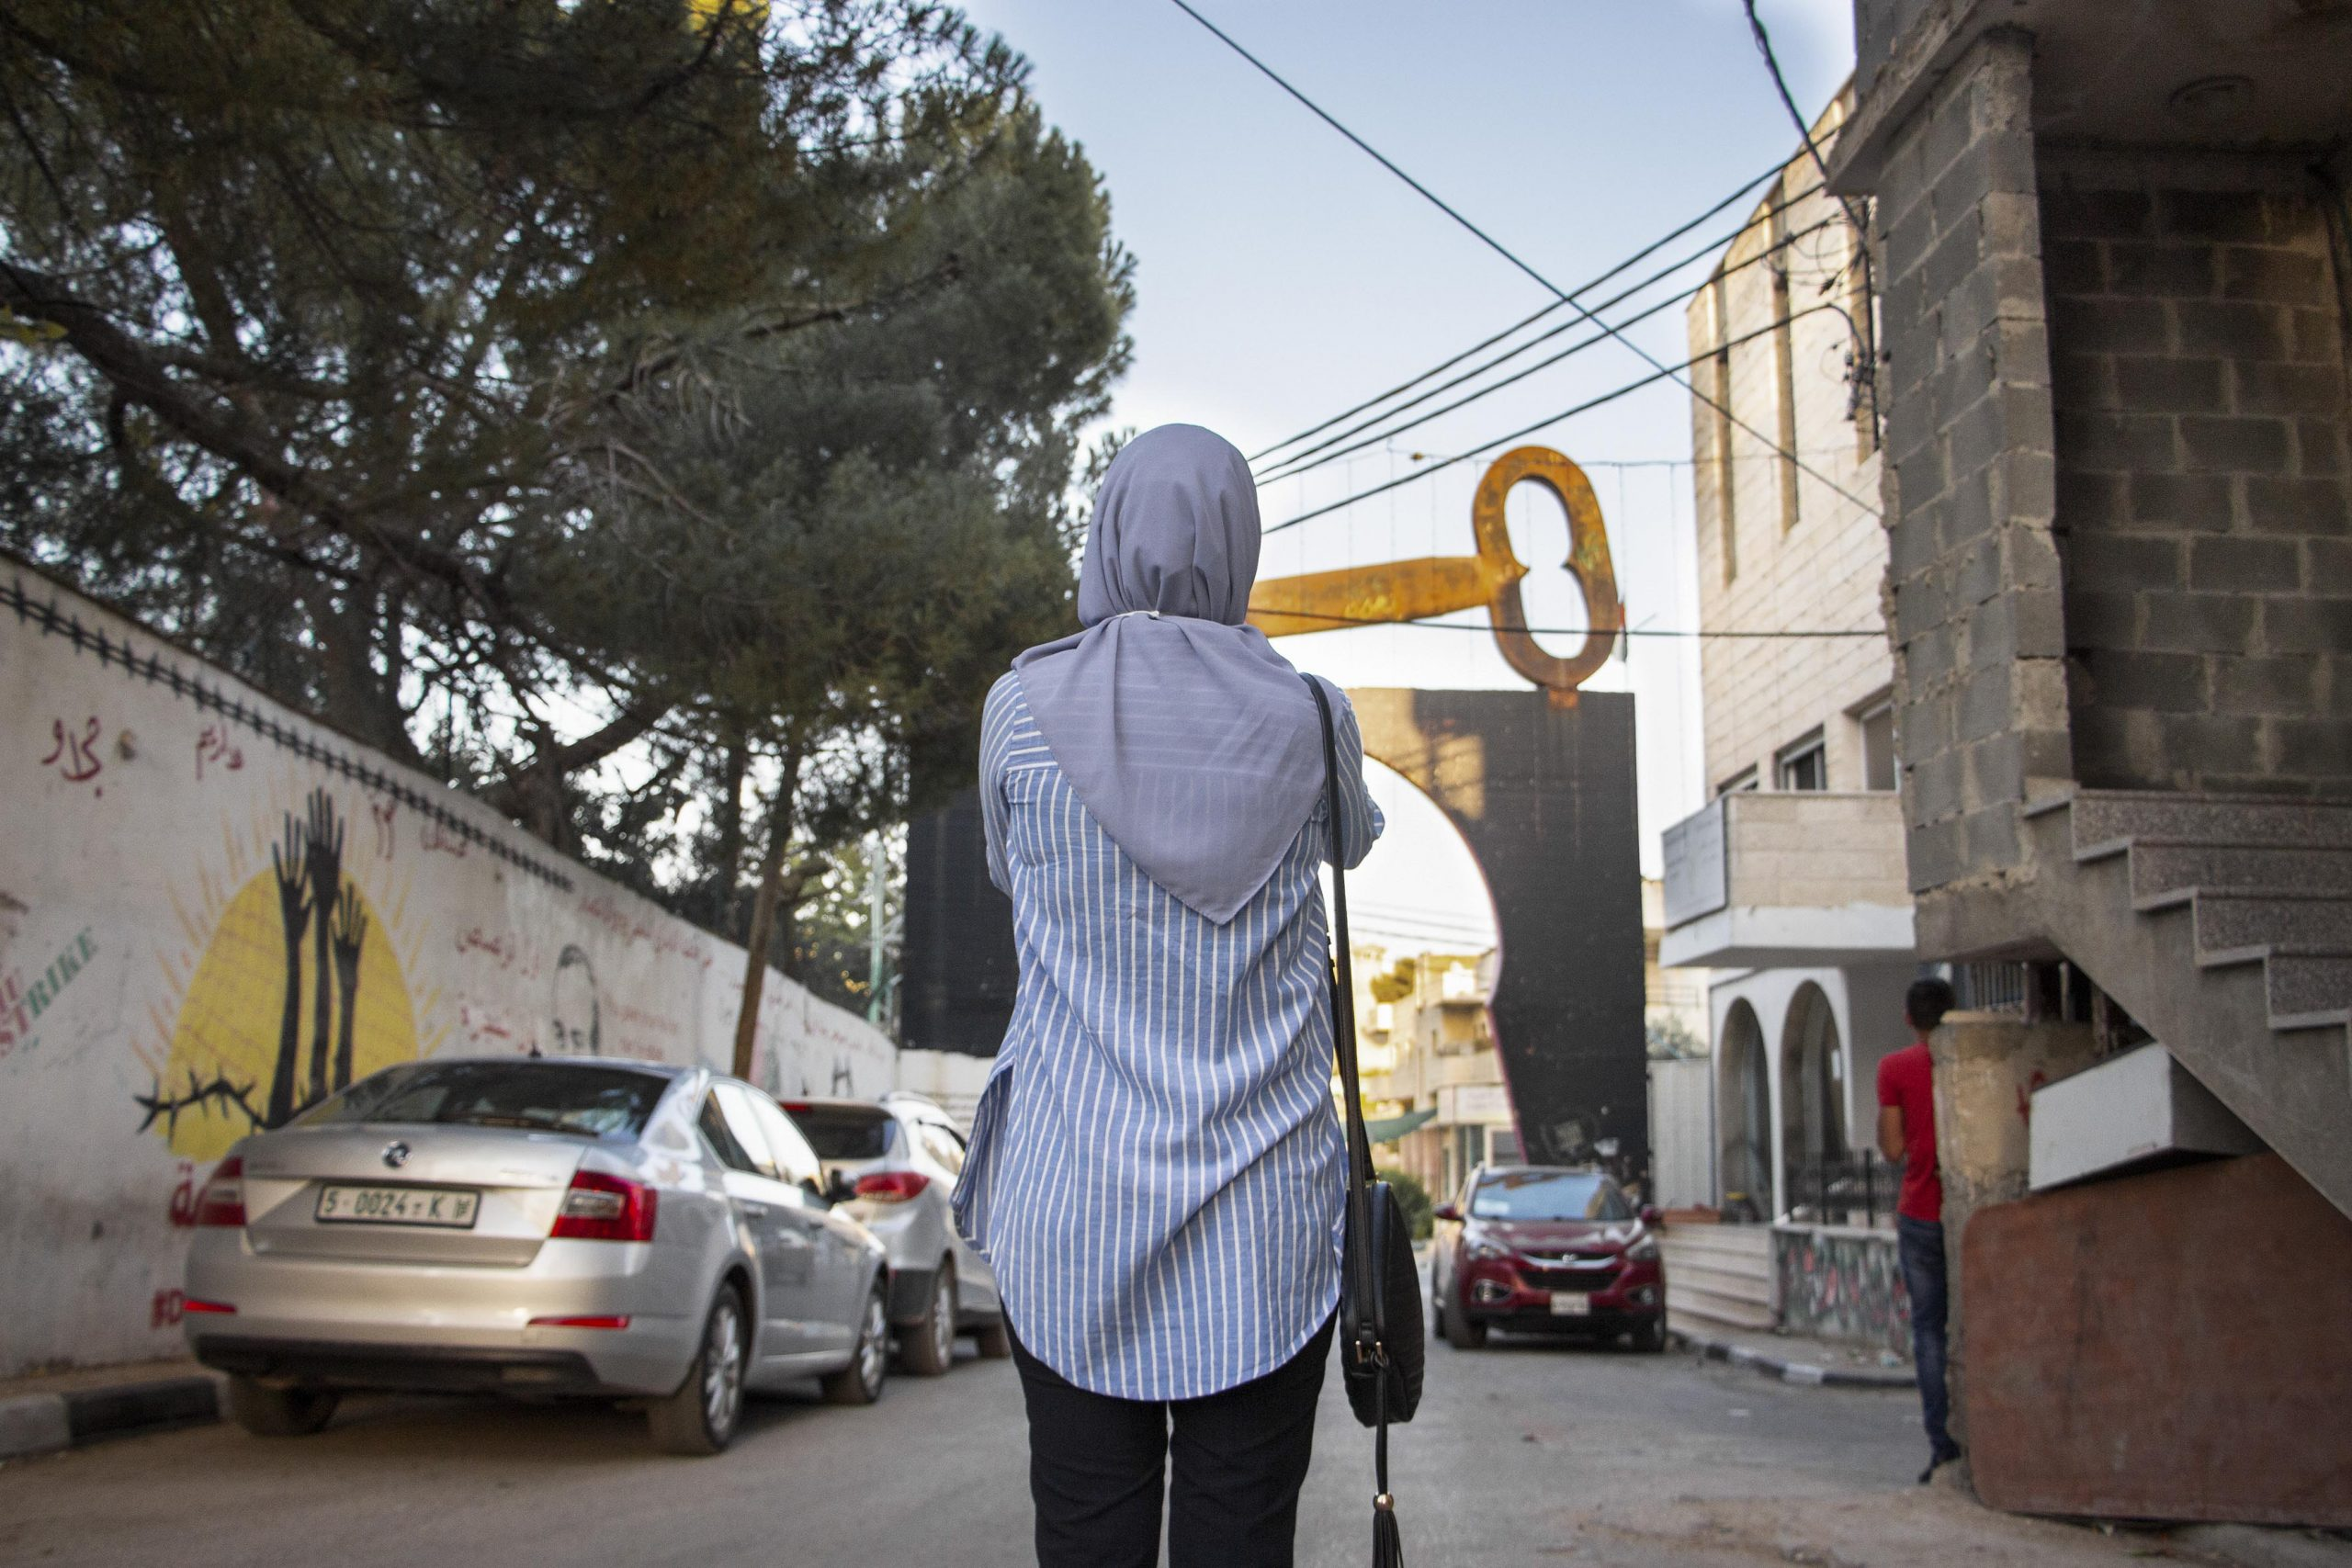 19 July 2020: Iltizam Morrar near the Aida refugee camp. The giant key over the camp's entrance is a symbol of Palestinian rights to the houses and land Israel colonised in 1948. (Photograph by Reem Jarrar)